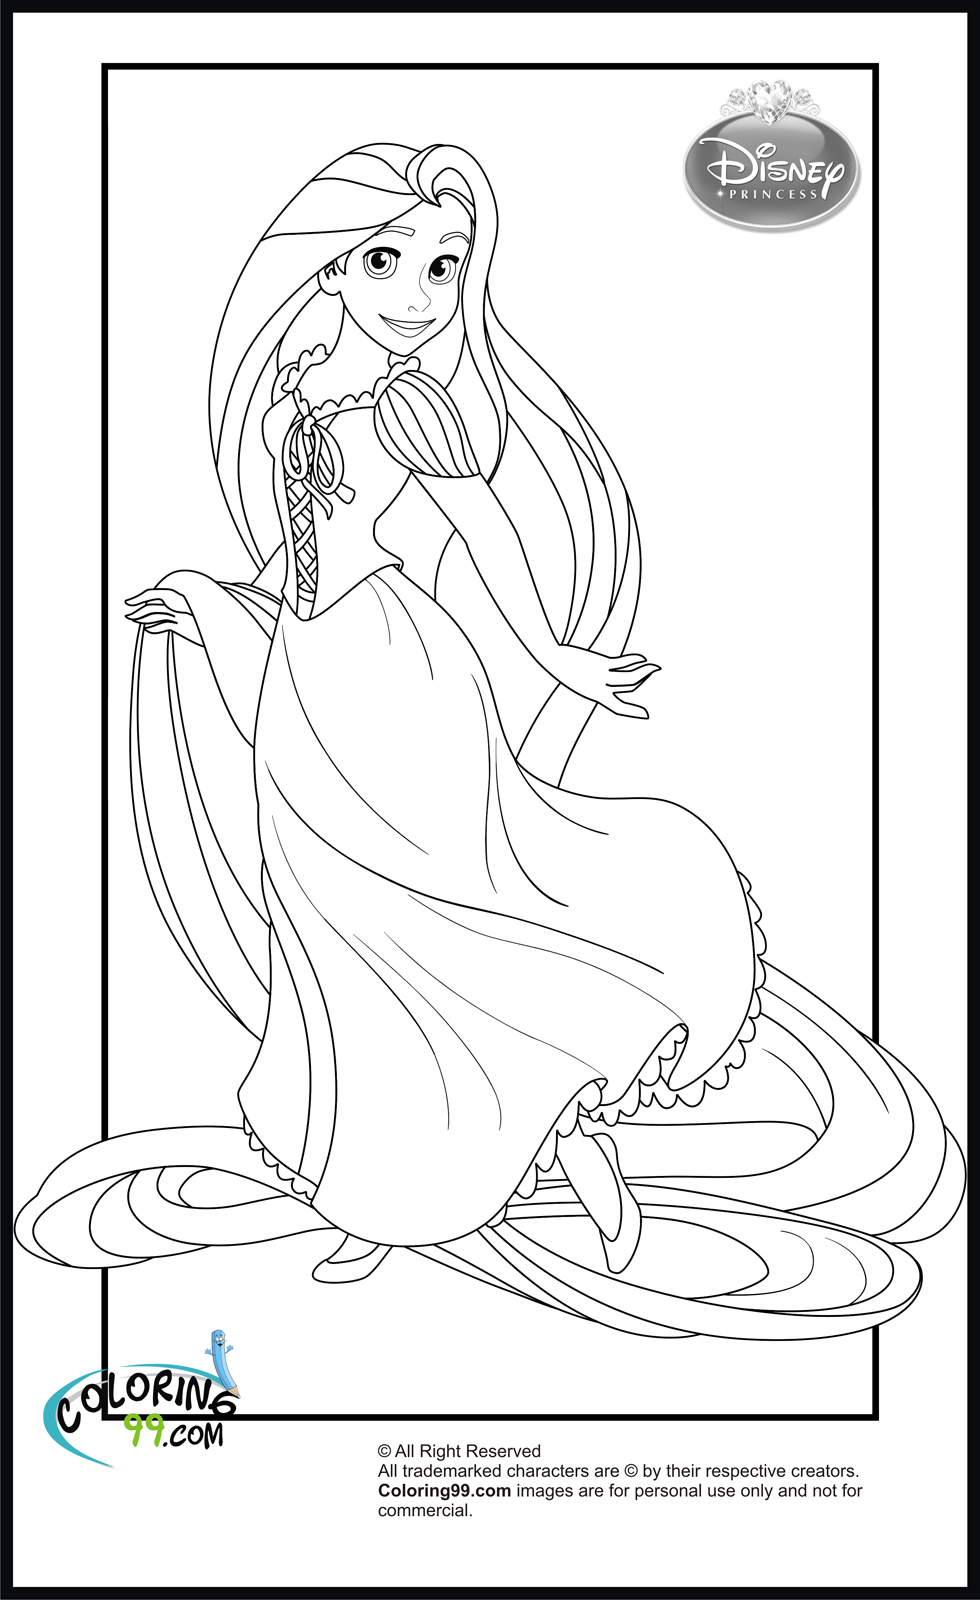 colouring pages for disney princesses disney princess cindirella coloring page cinderella pages for colouring princesses disney